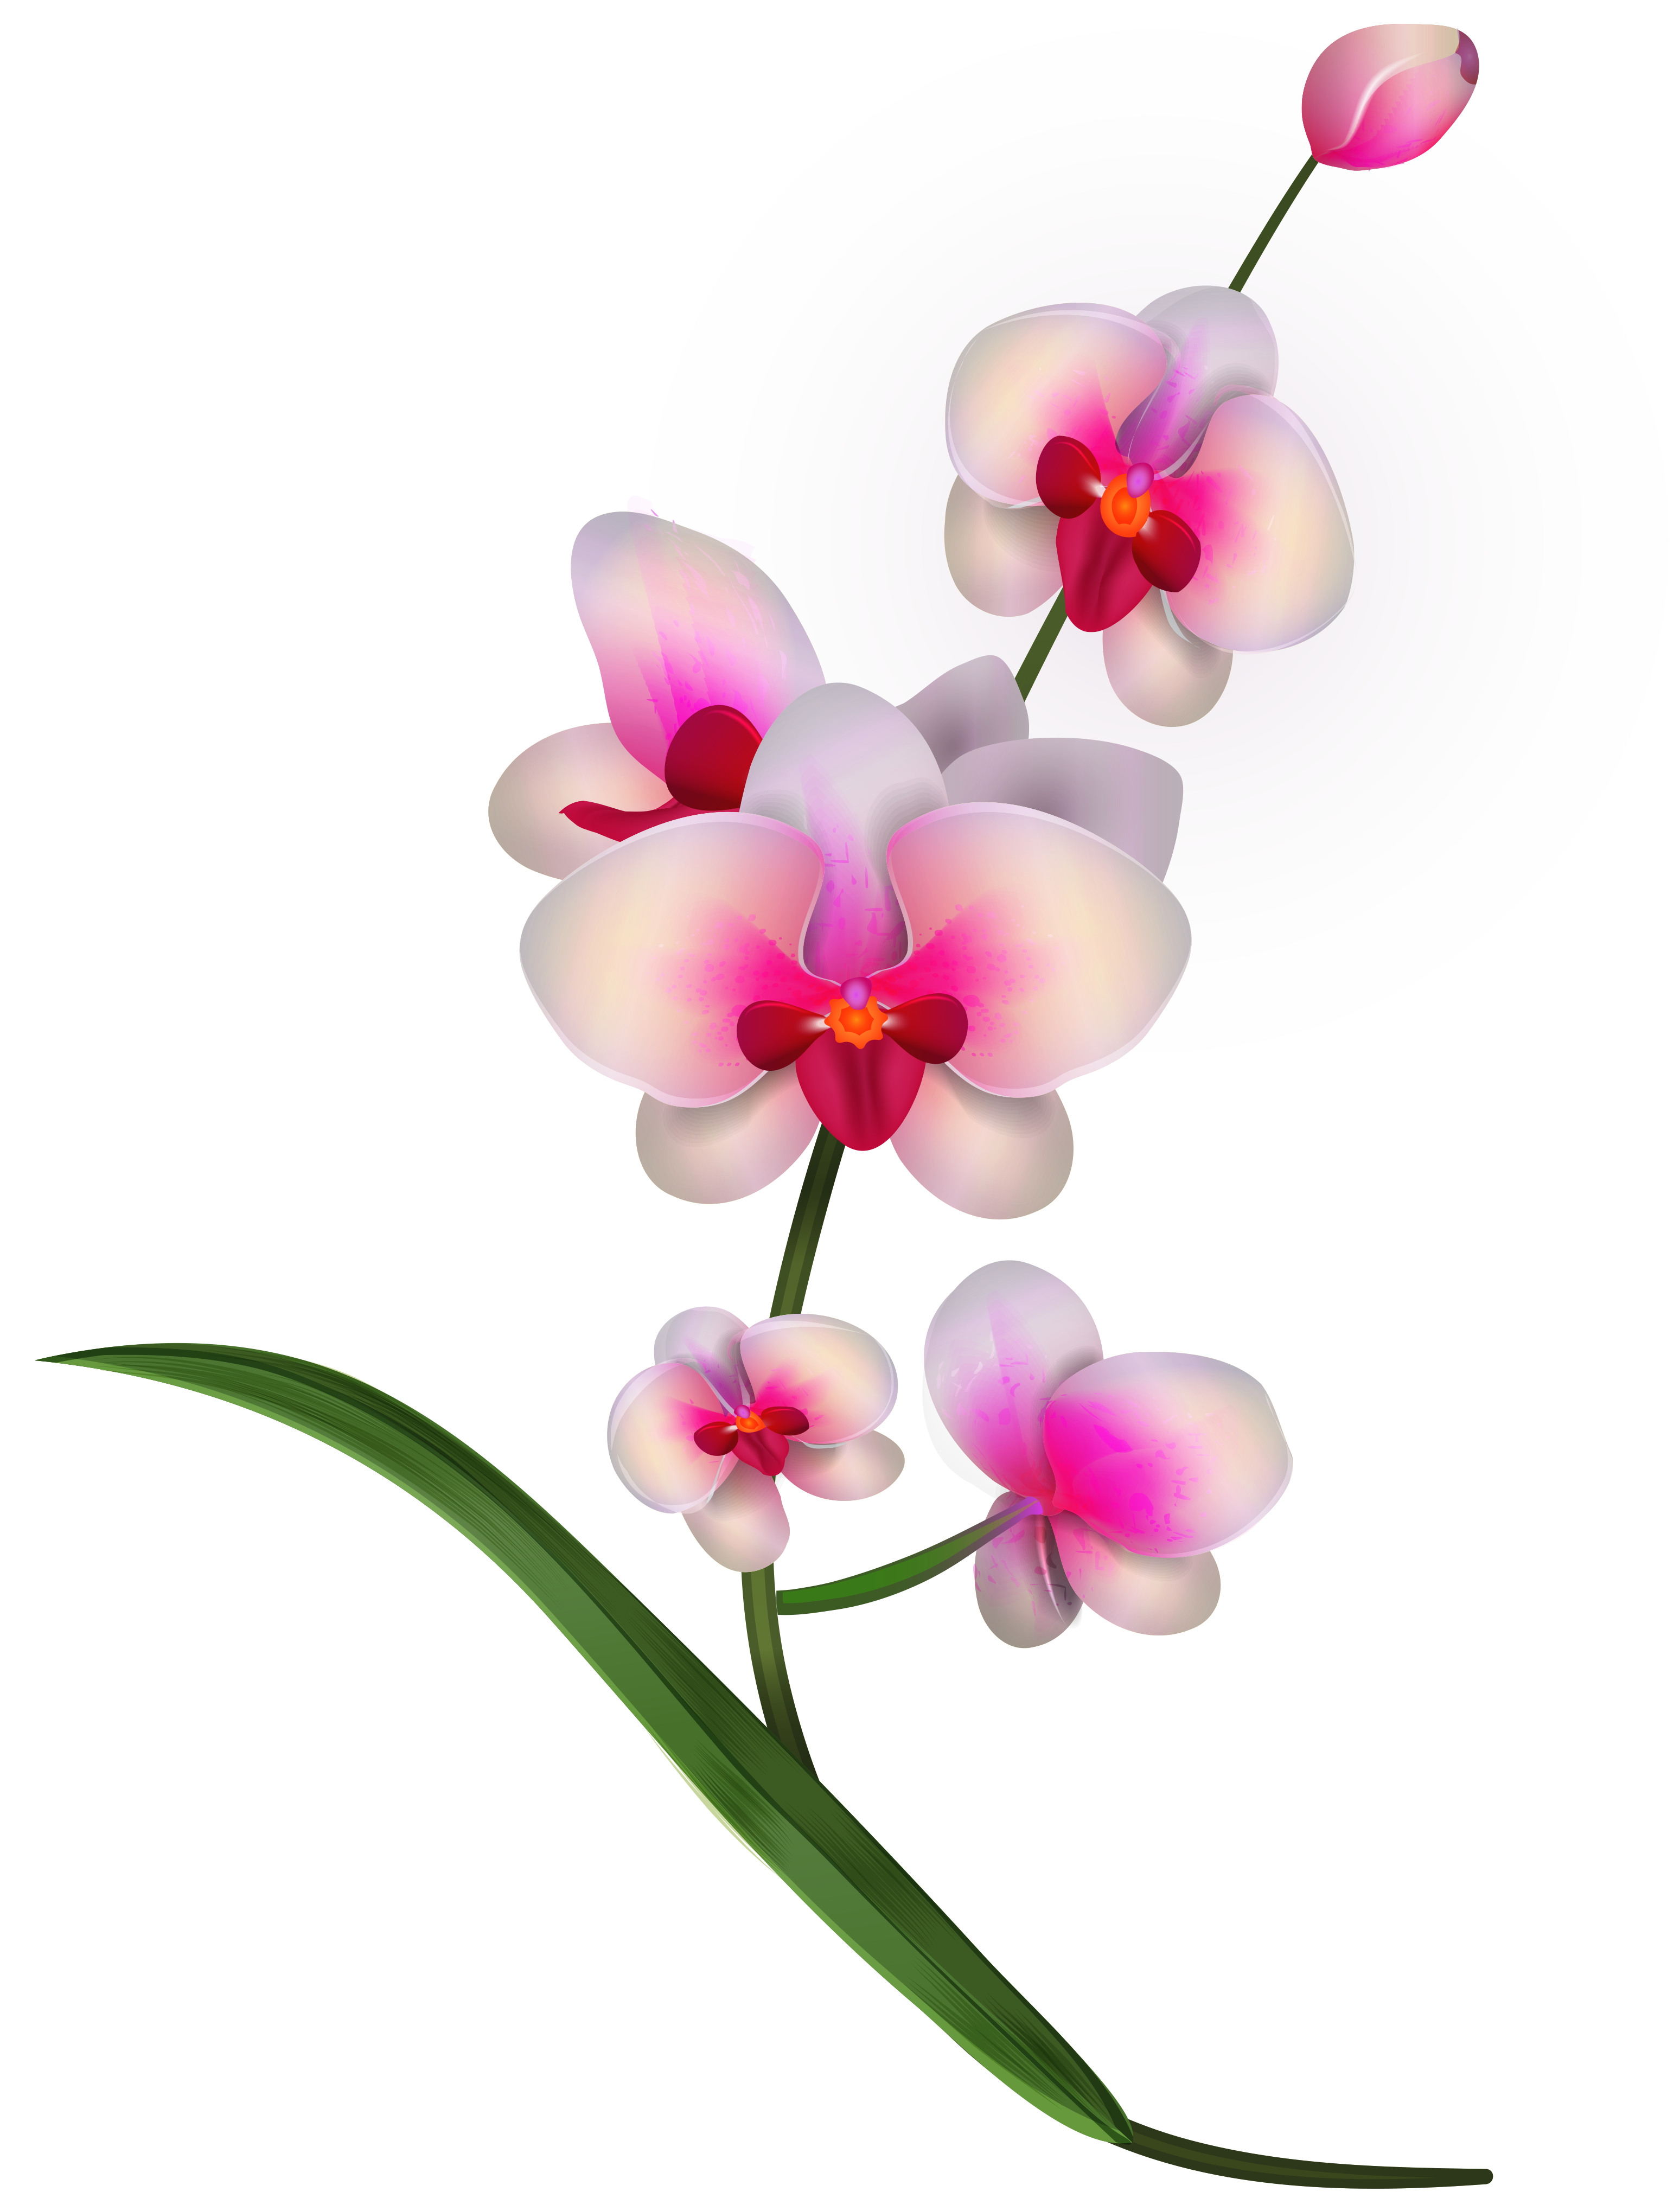 Orchid Clipart Png Image Gallery Yopriceville High Quality Images And Transparent Png Free Clipart Orchid Drawing Digital Flowers Blossoms Art